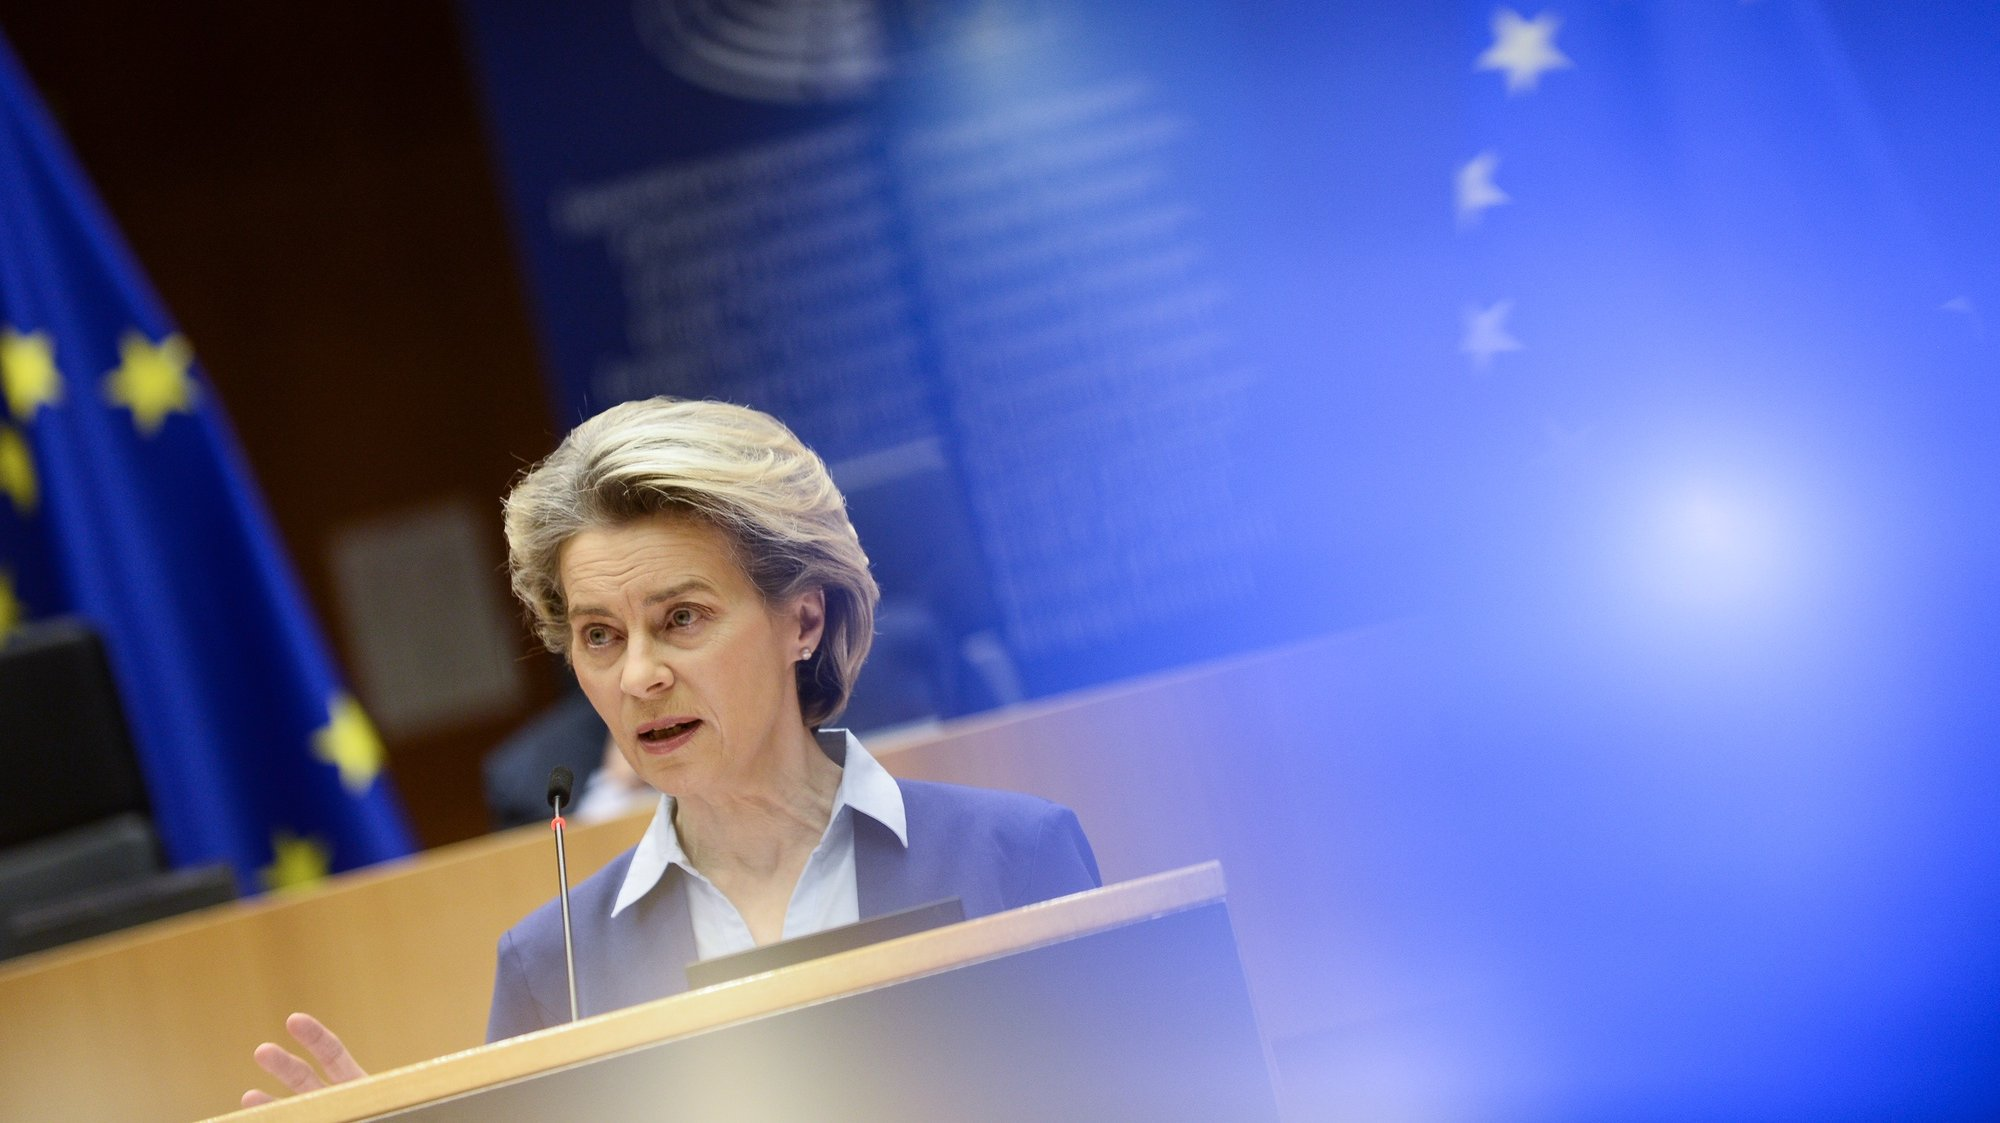 epa09000553 European Commission President Ursula von der Leyen speaks during the debate on the state of play of the EU's coronavirus disease (COVID-19) vaccination strategy, at the European Parliament in Brussels, Belgium, 10 February 2021.  EPA/JOHANNA GERON / POOL